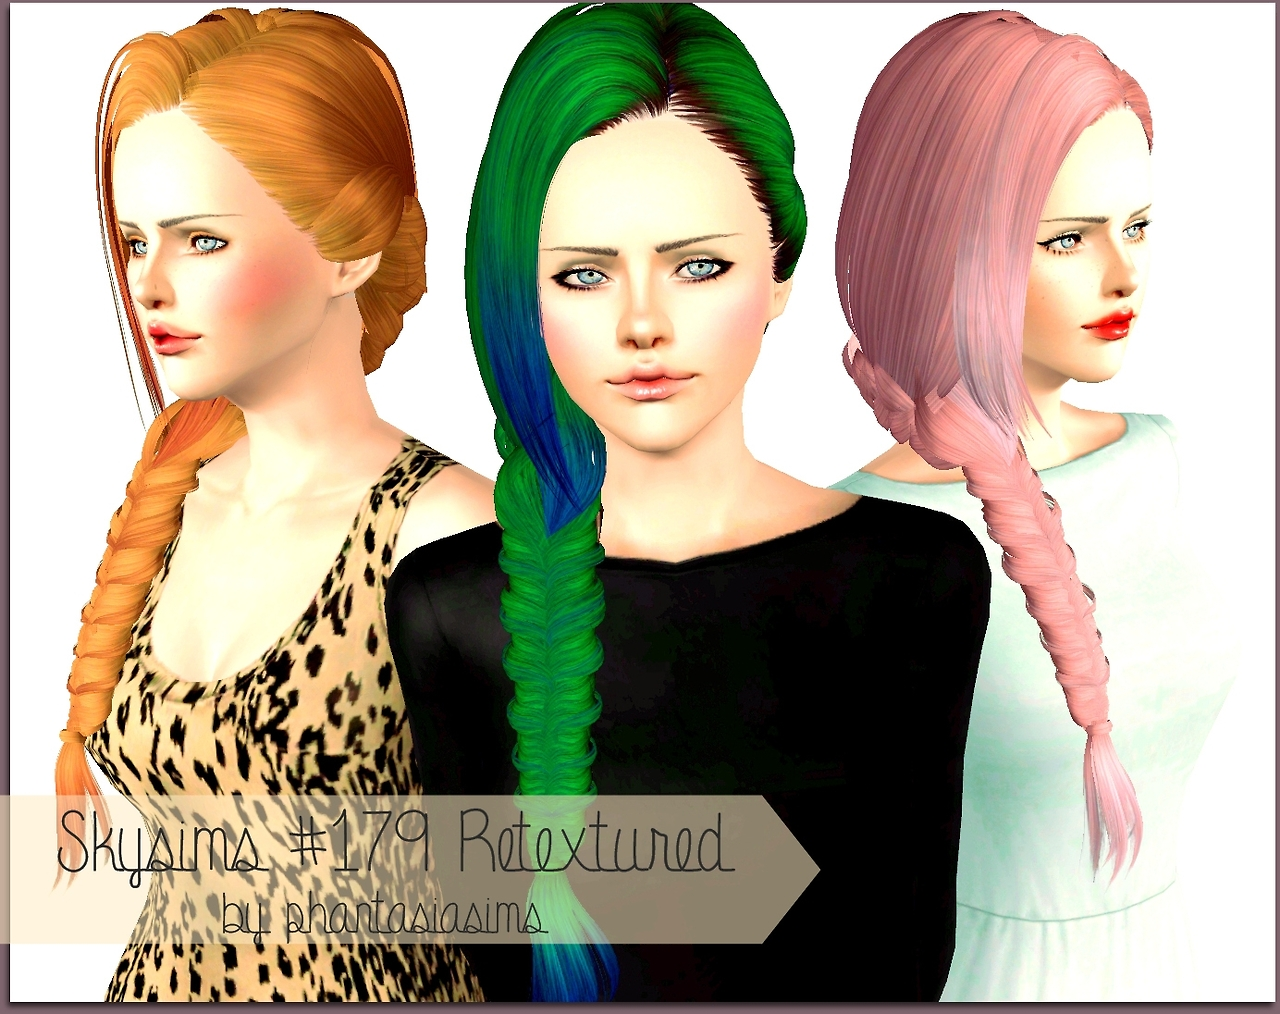 Skysims hairstyle 179 edited by Jassi